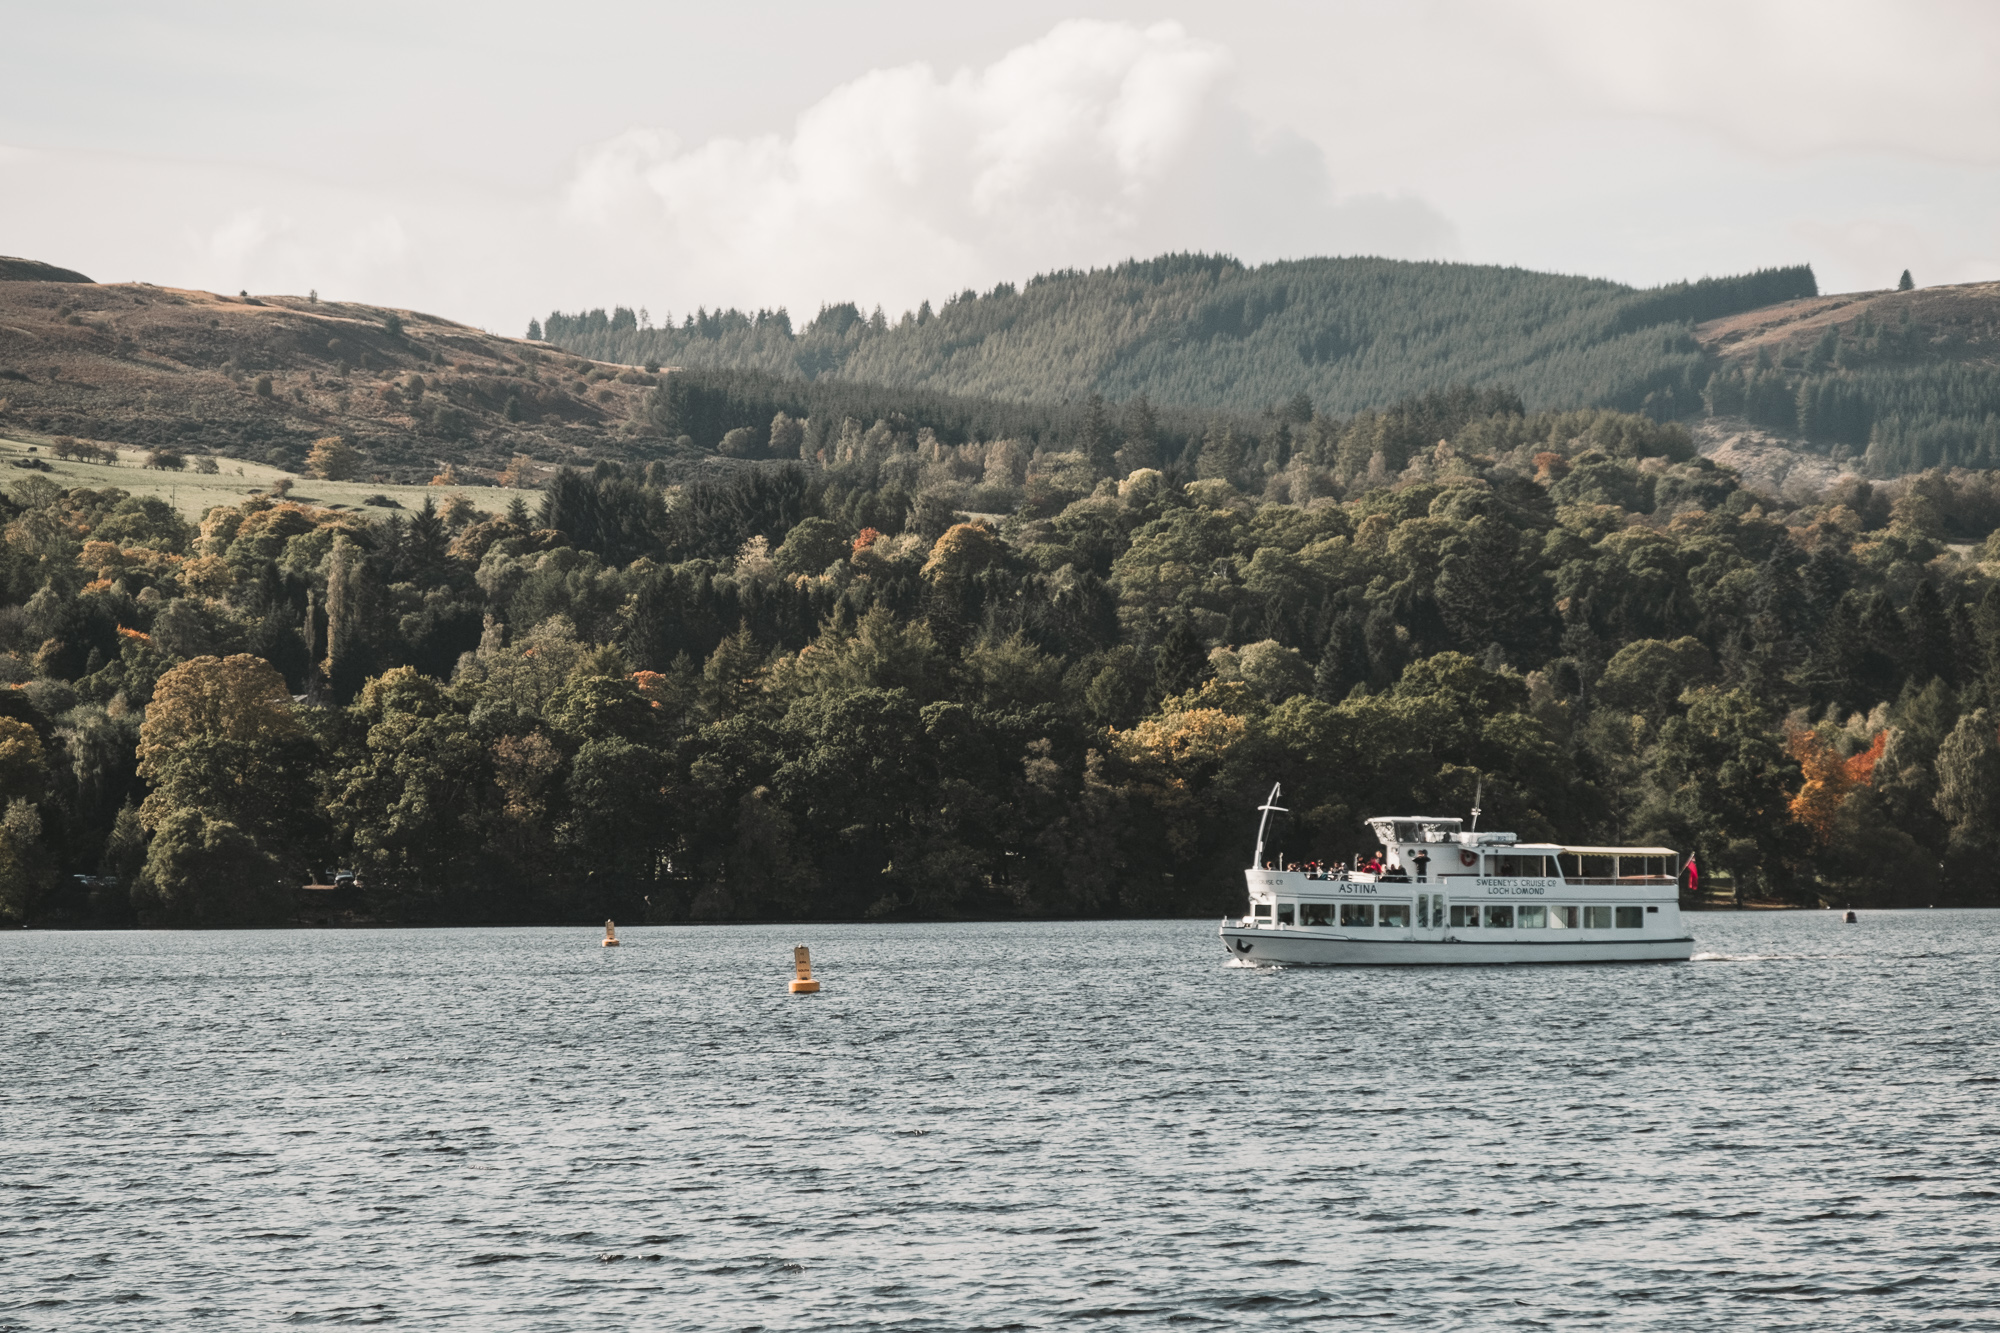 After the walk in the park take a   Sweeney Cruise   to explore Loch Lomond further